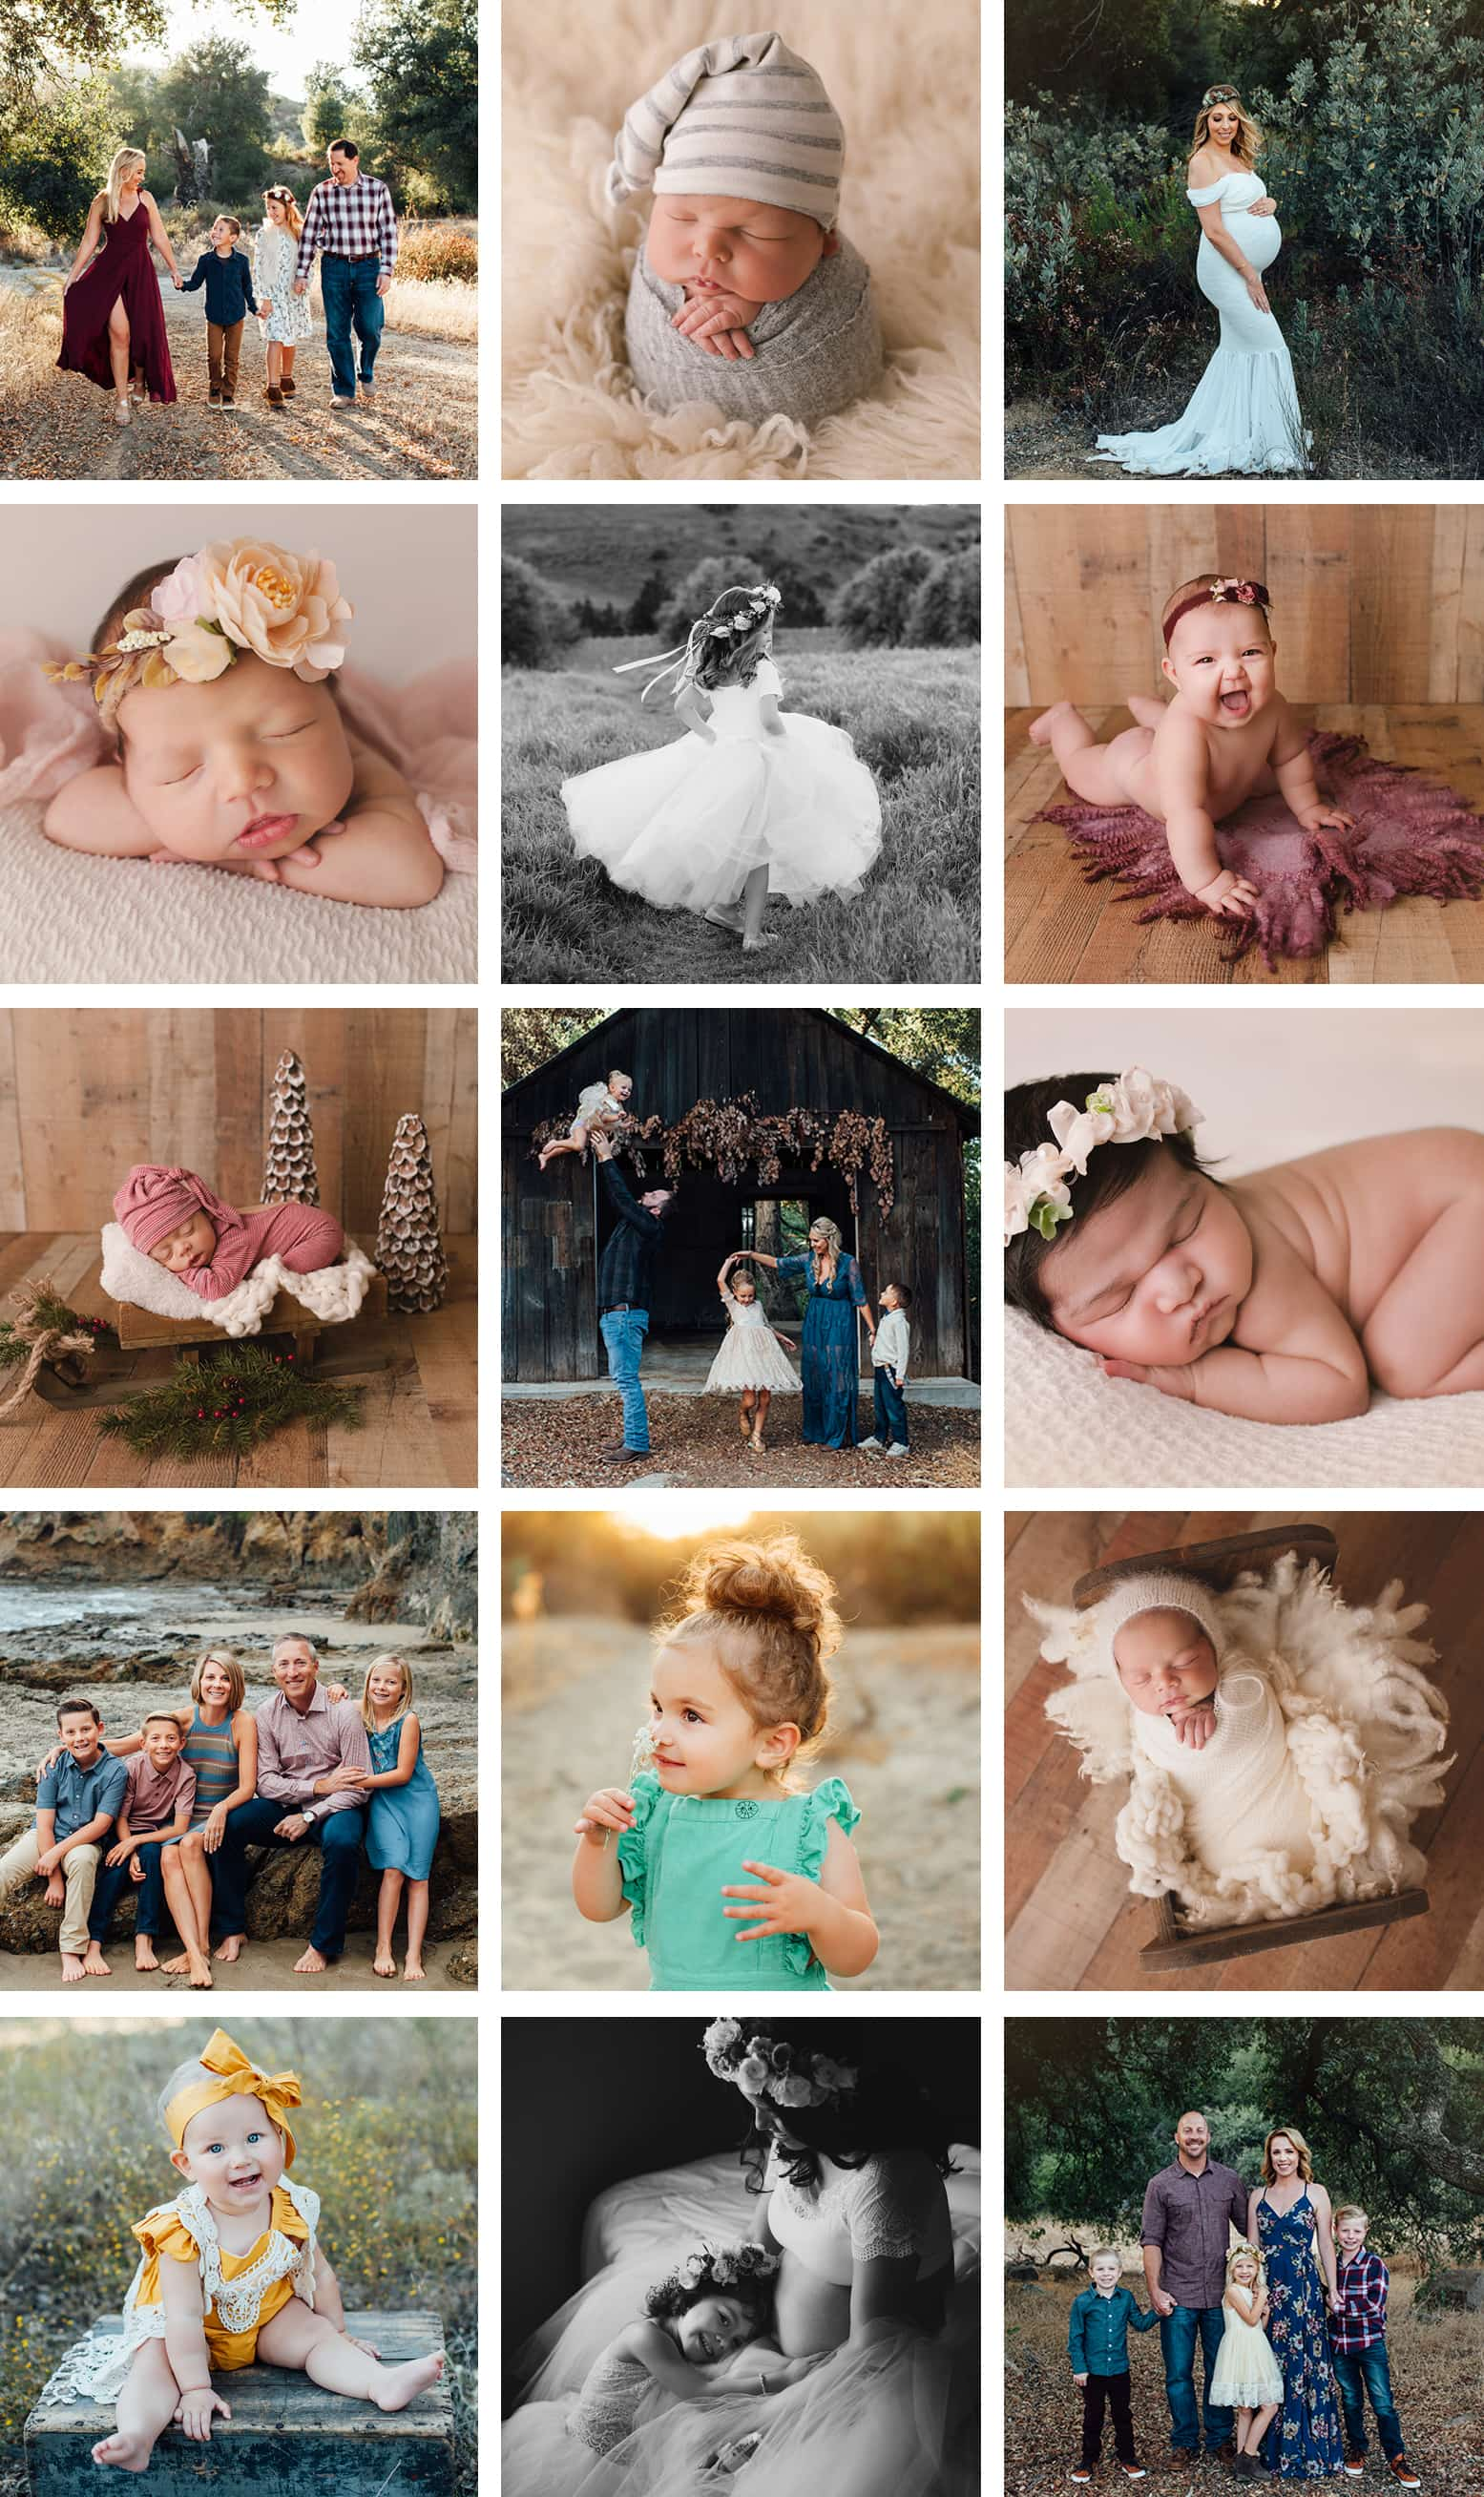 Temecula newborn photographer, Temecula child photographer, Temecula maternity photographer, Temecula family photographer